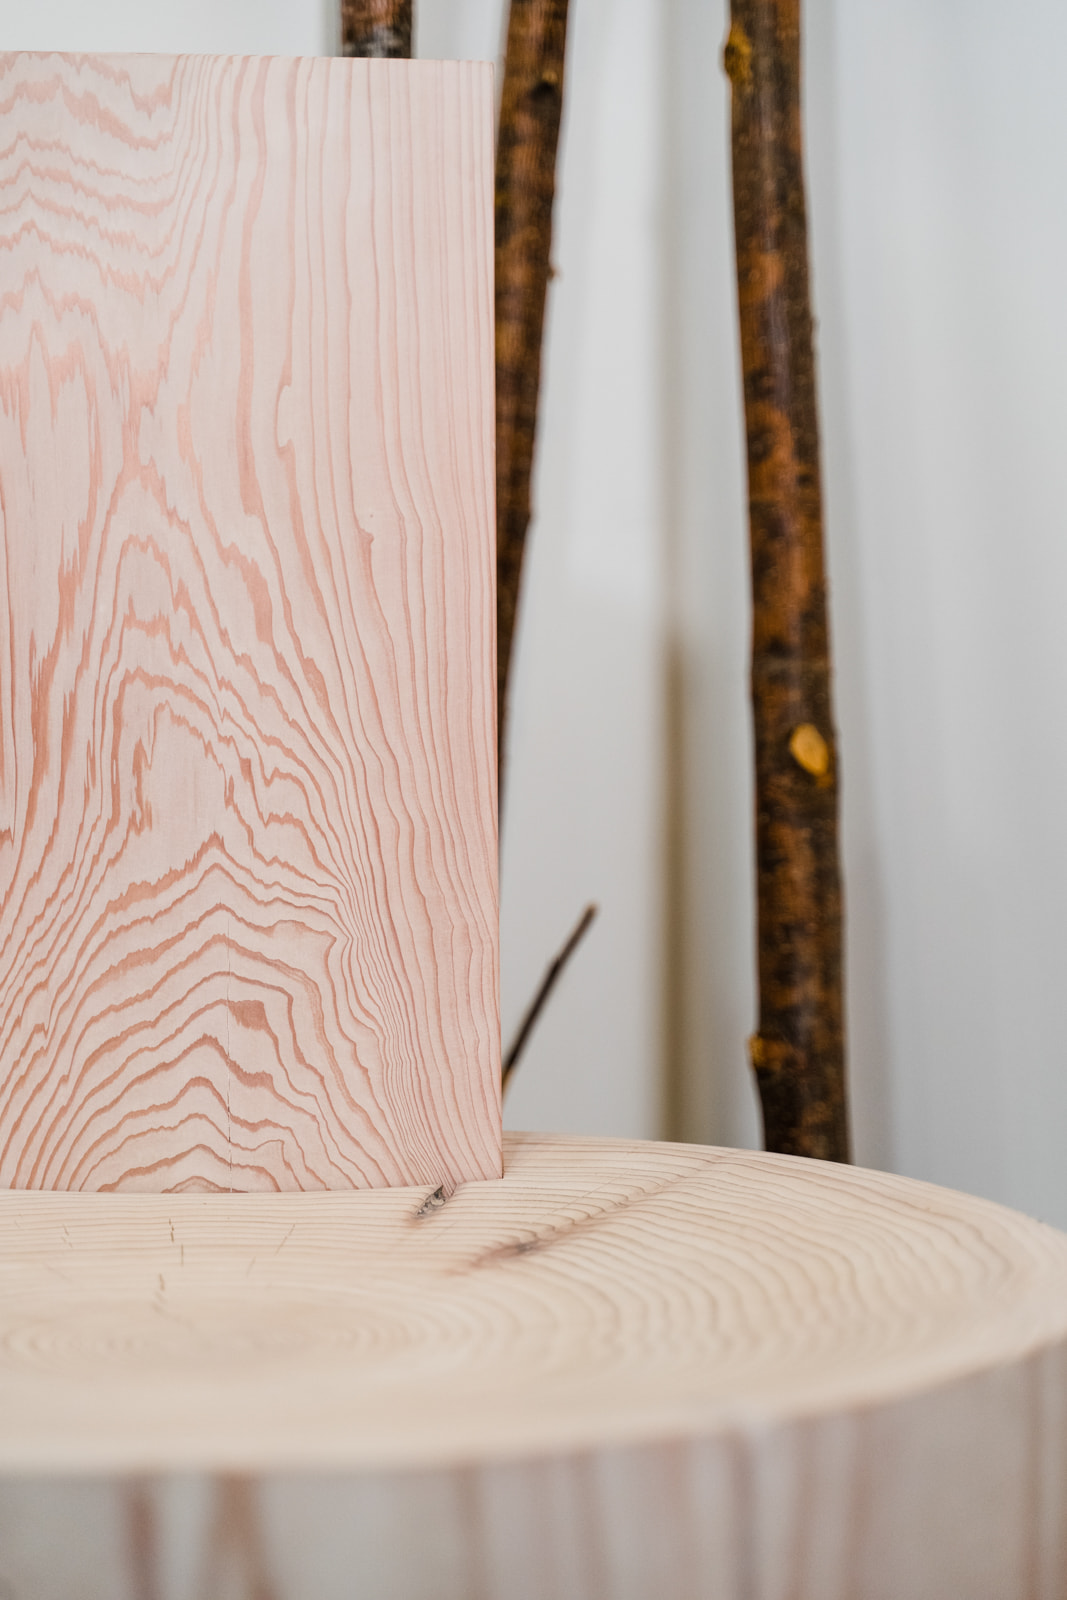 Photo displays the grain of the Mysa chair. There are decorative branches in the background.